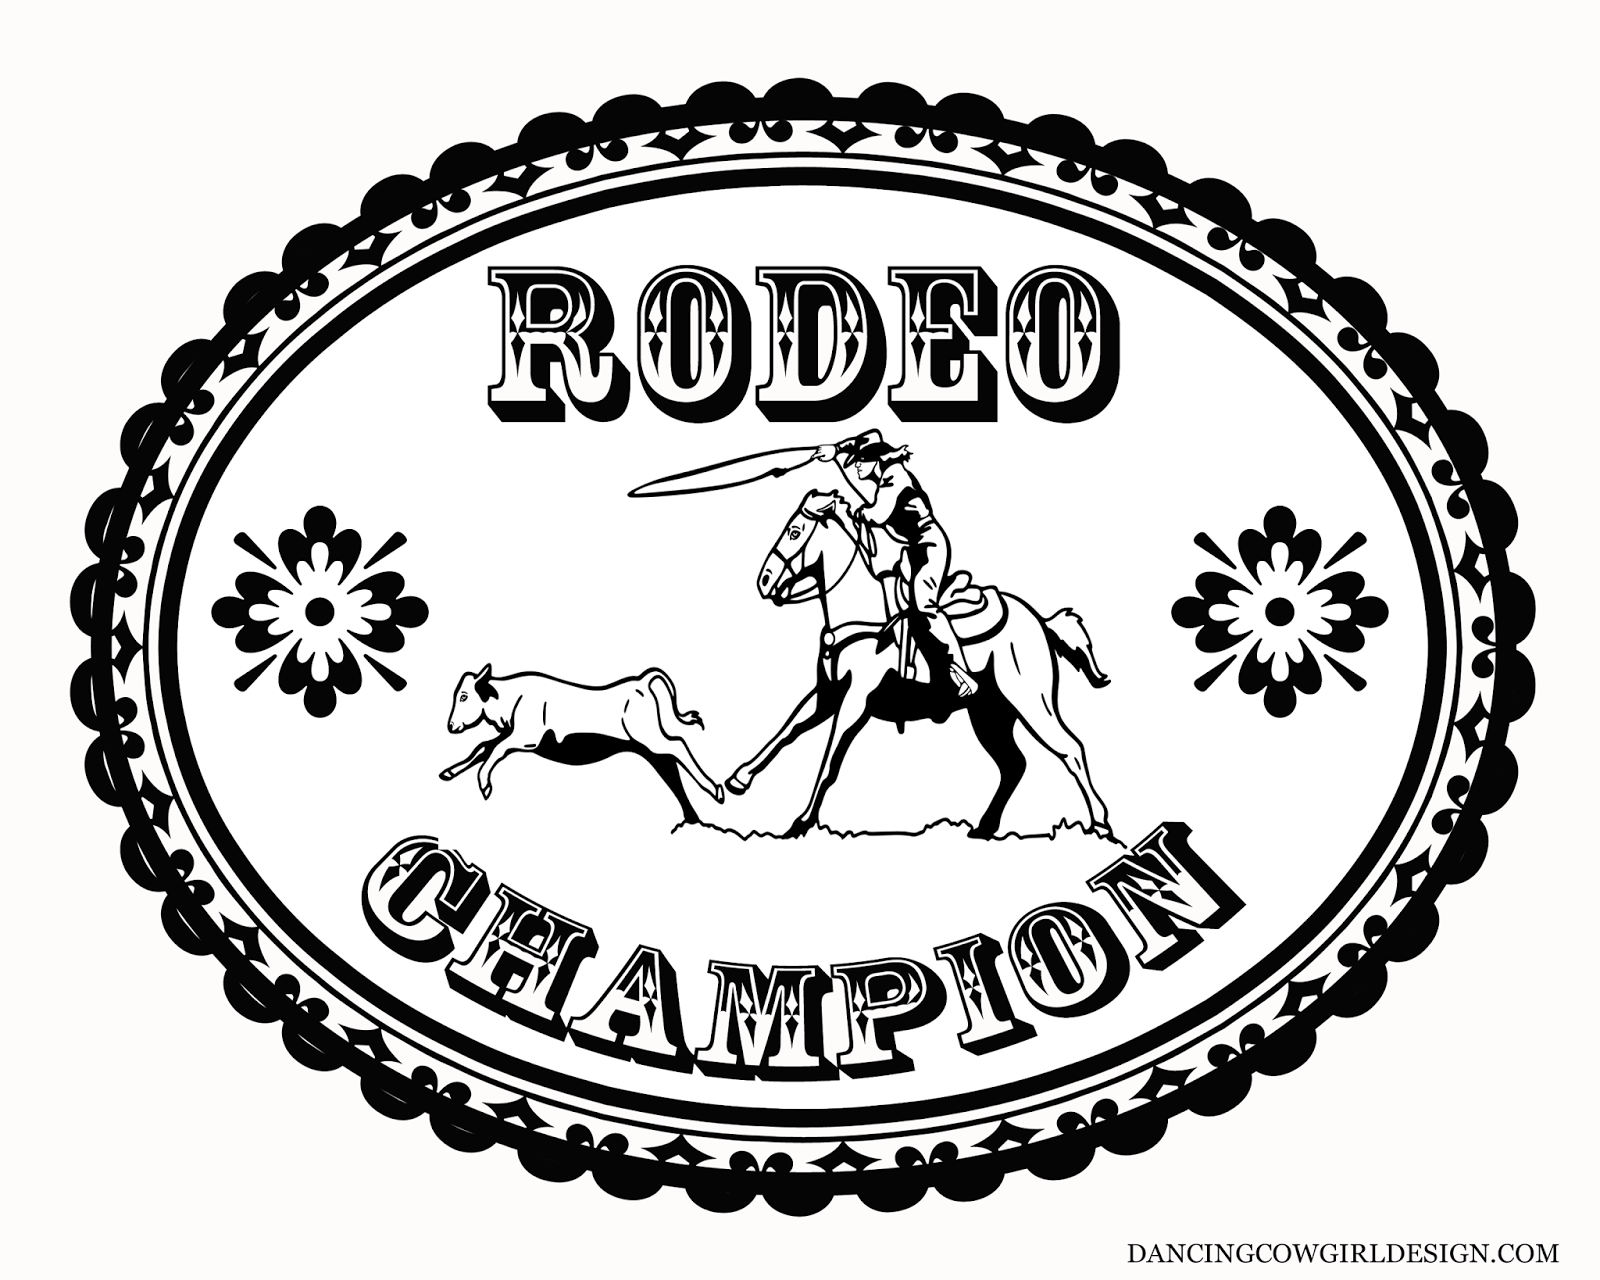 RODEO COLORING PAGES: Coloring Sheet Rodeo Calf Roping Belt Buckle